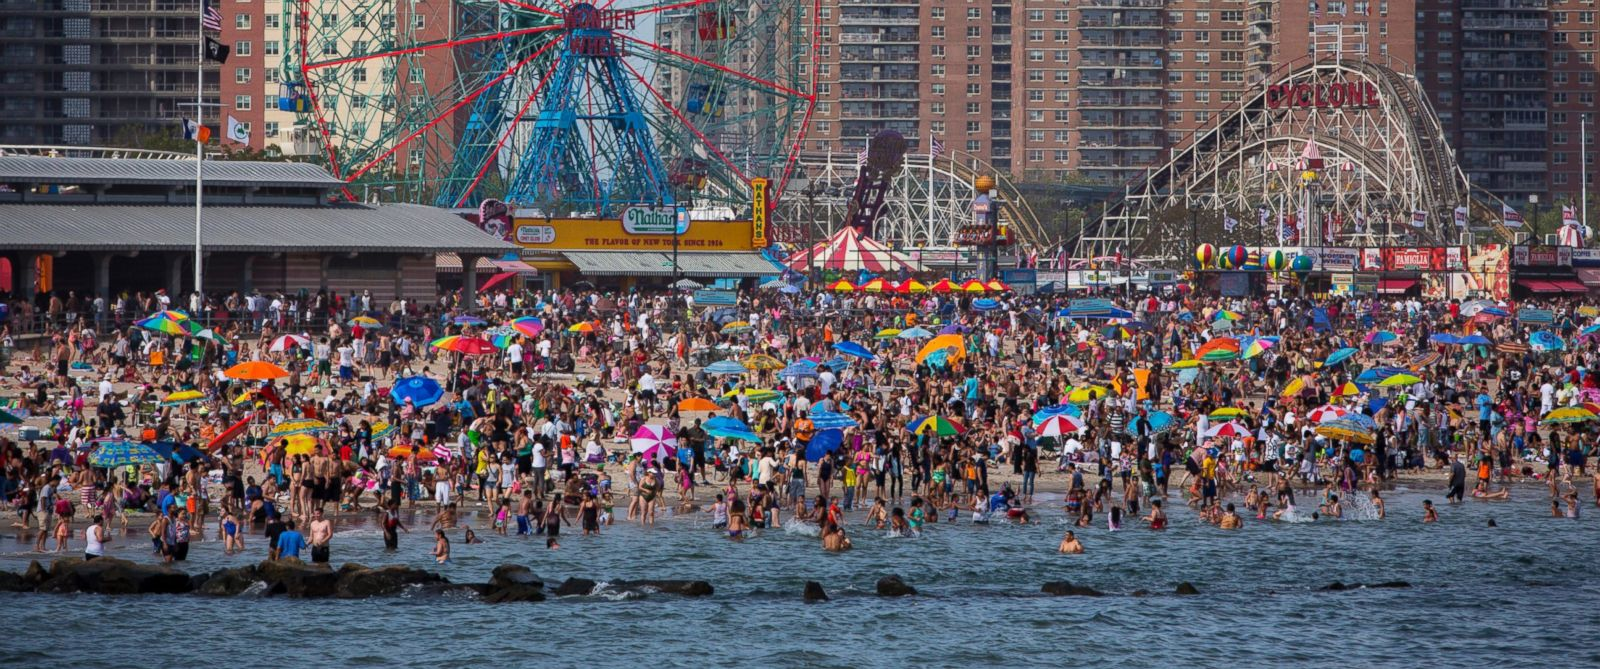 PHOTO: People crowd the beach at Coney Island on Memorial Day, May 26, 2014 in the Brooklyn borough of New York City.